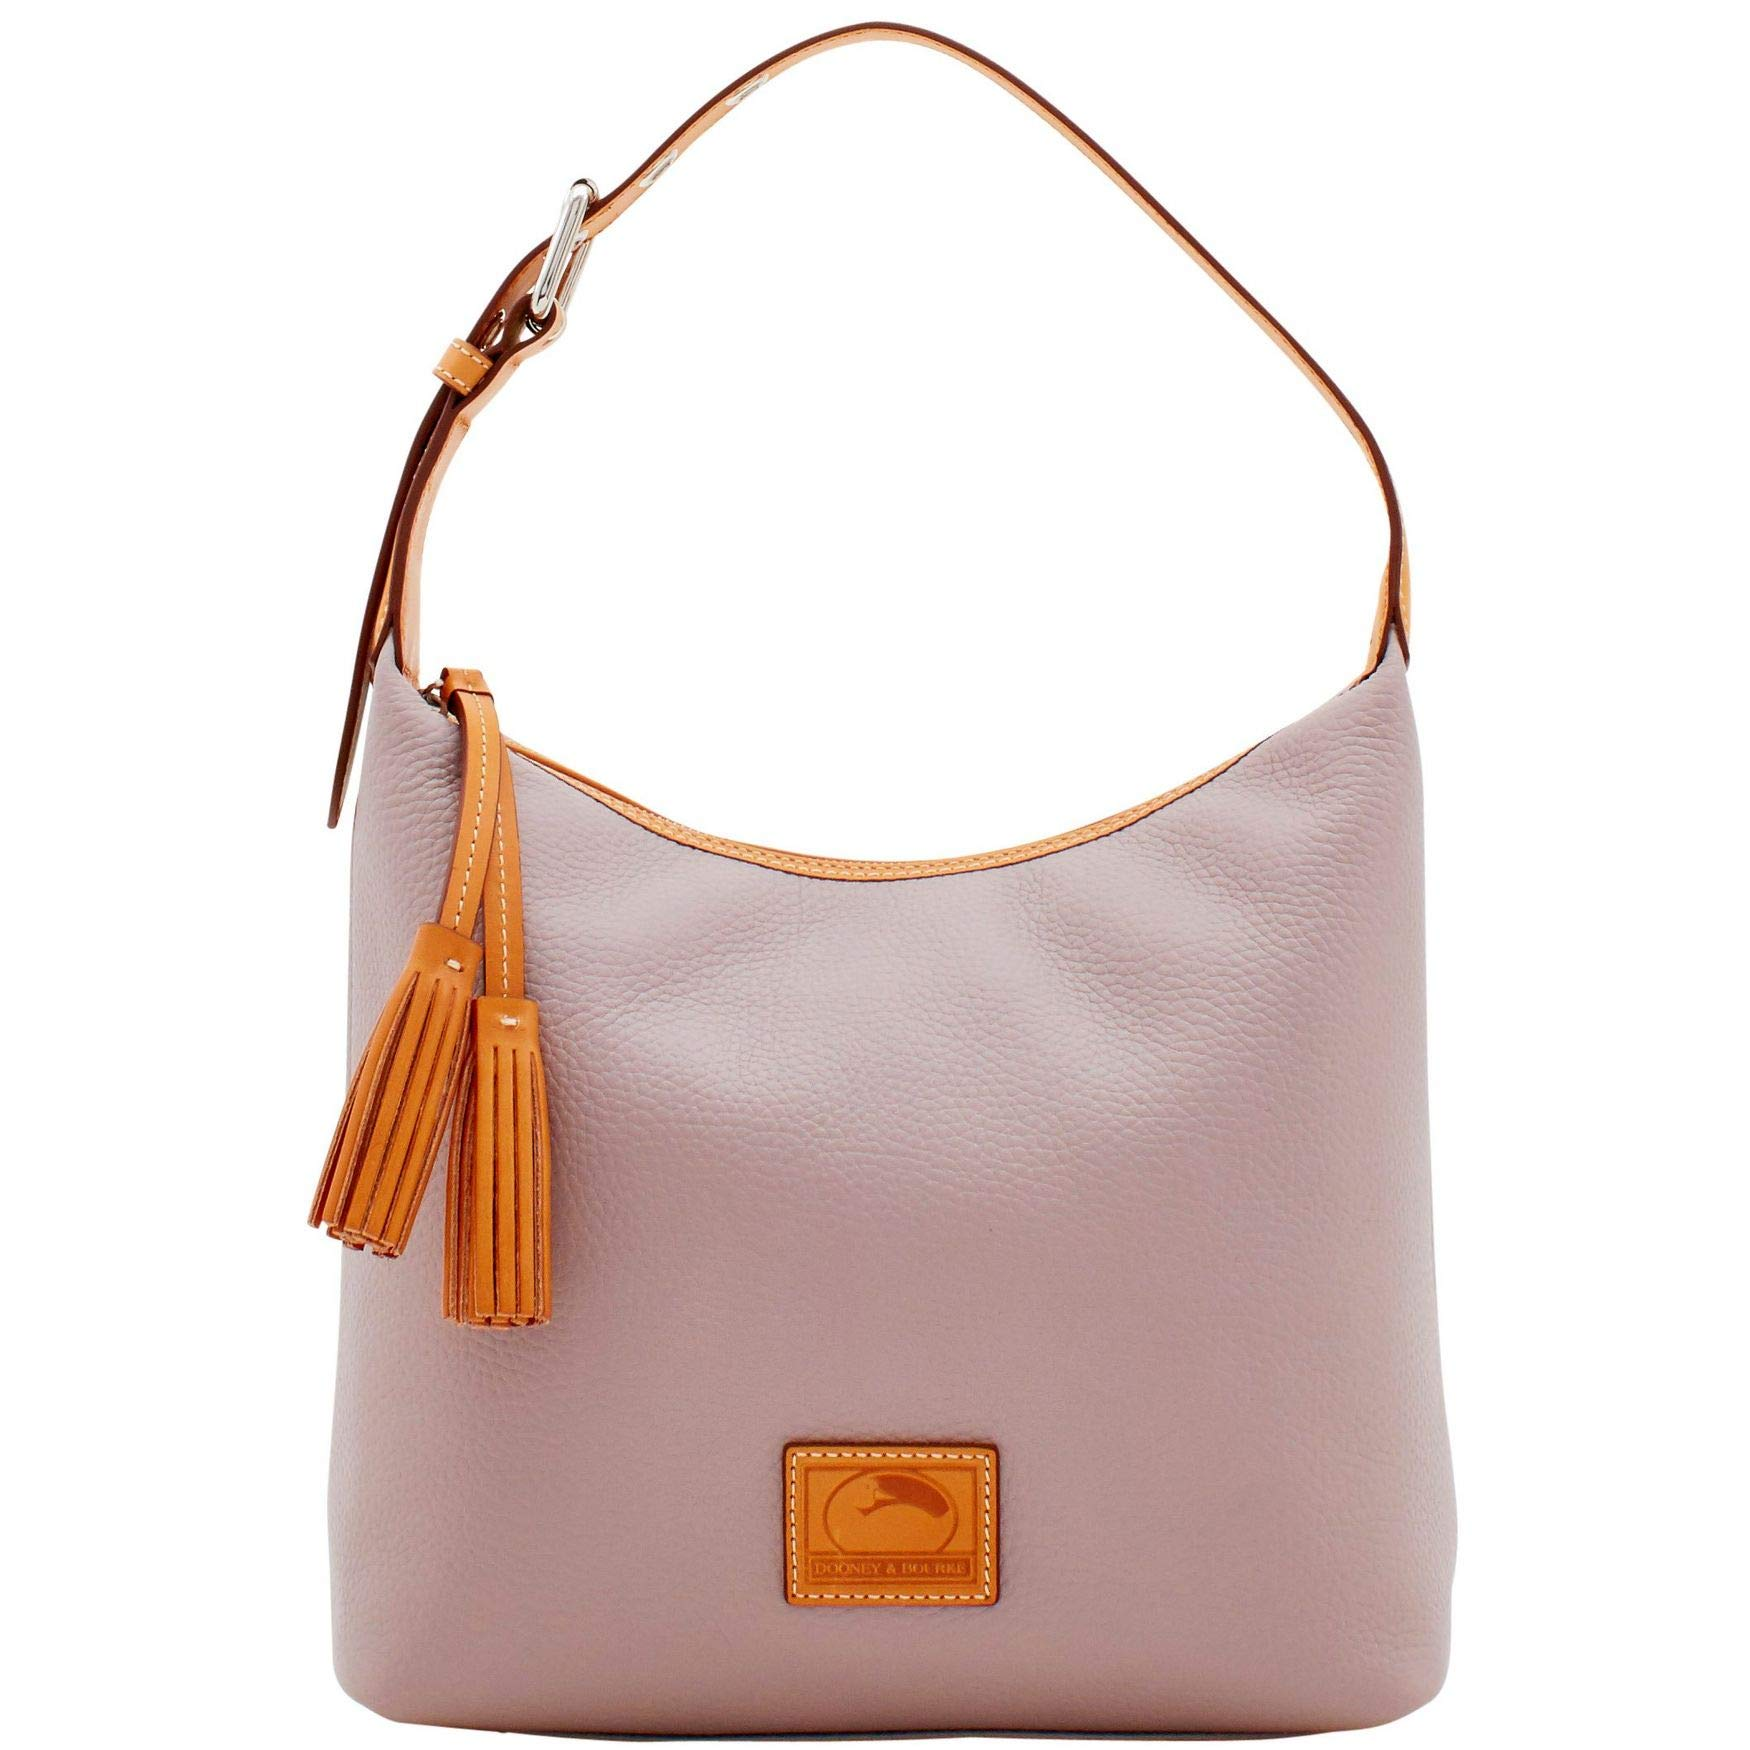 Dooney & Bourke Patterson Leather Paige Sac Hobo Oyster